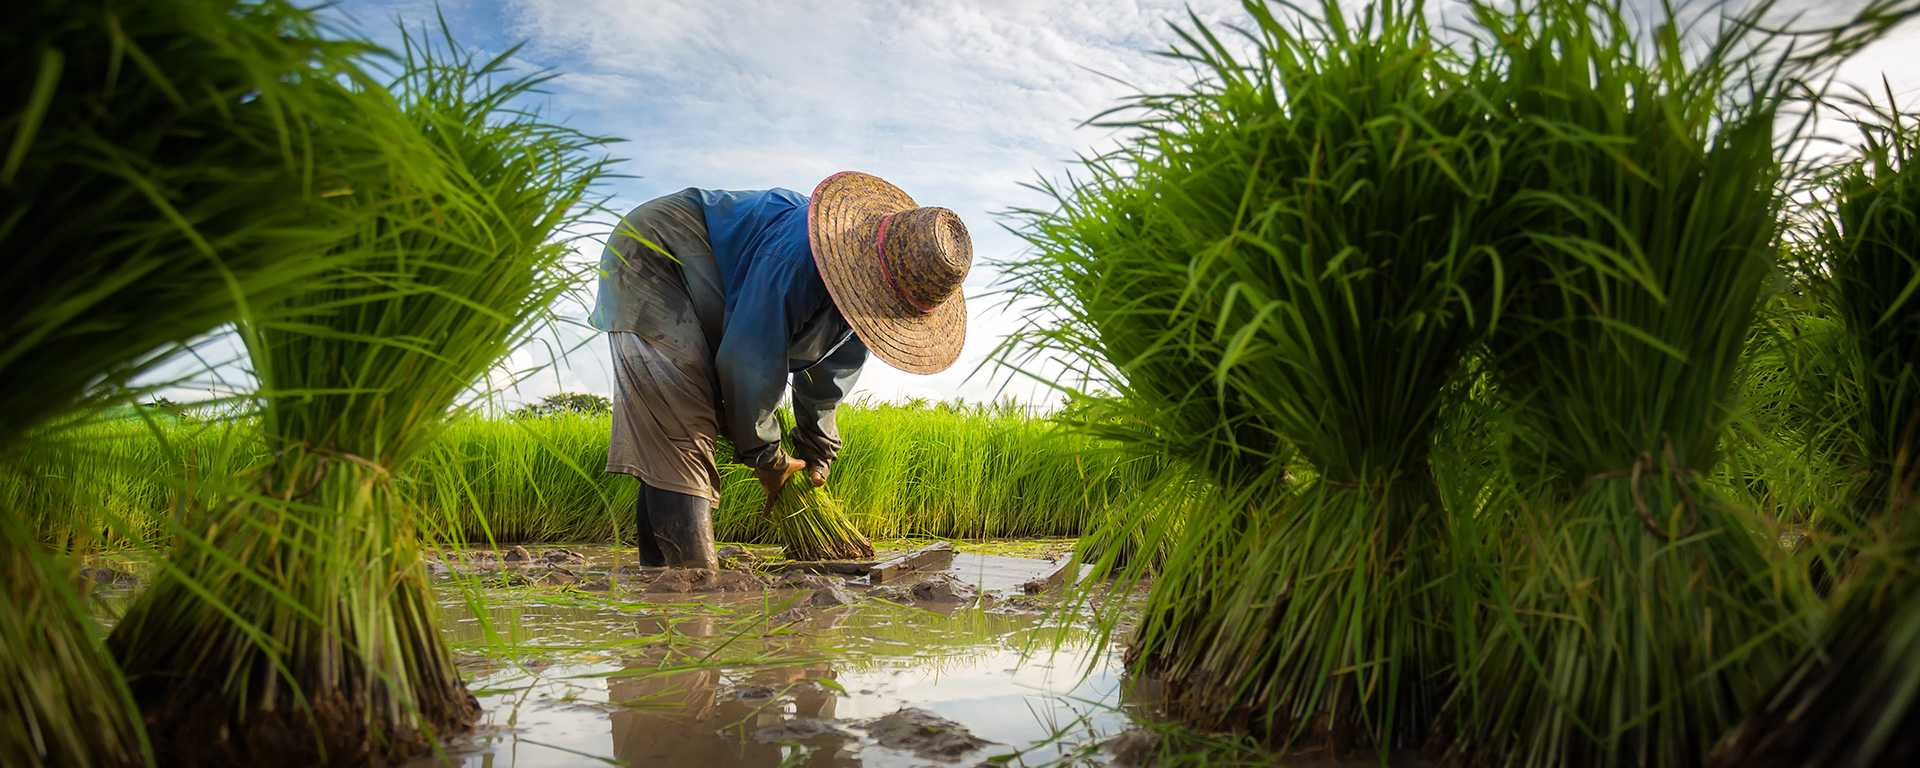 Rice-Farmer-1920×768-660kb